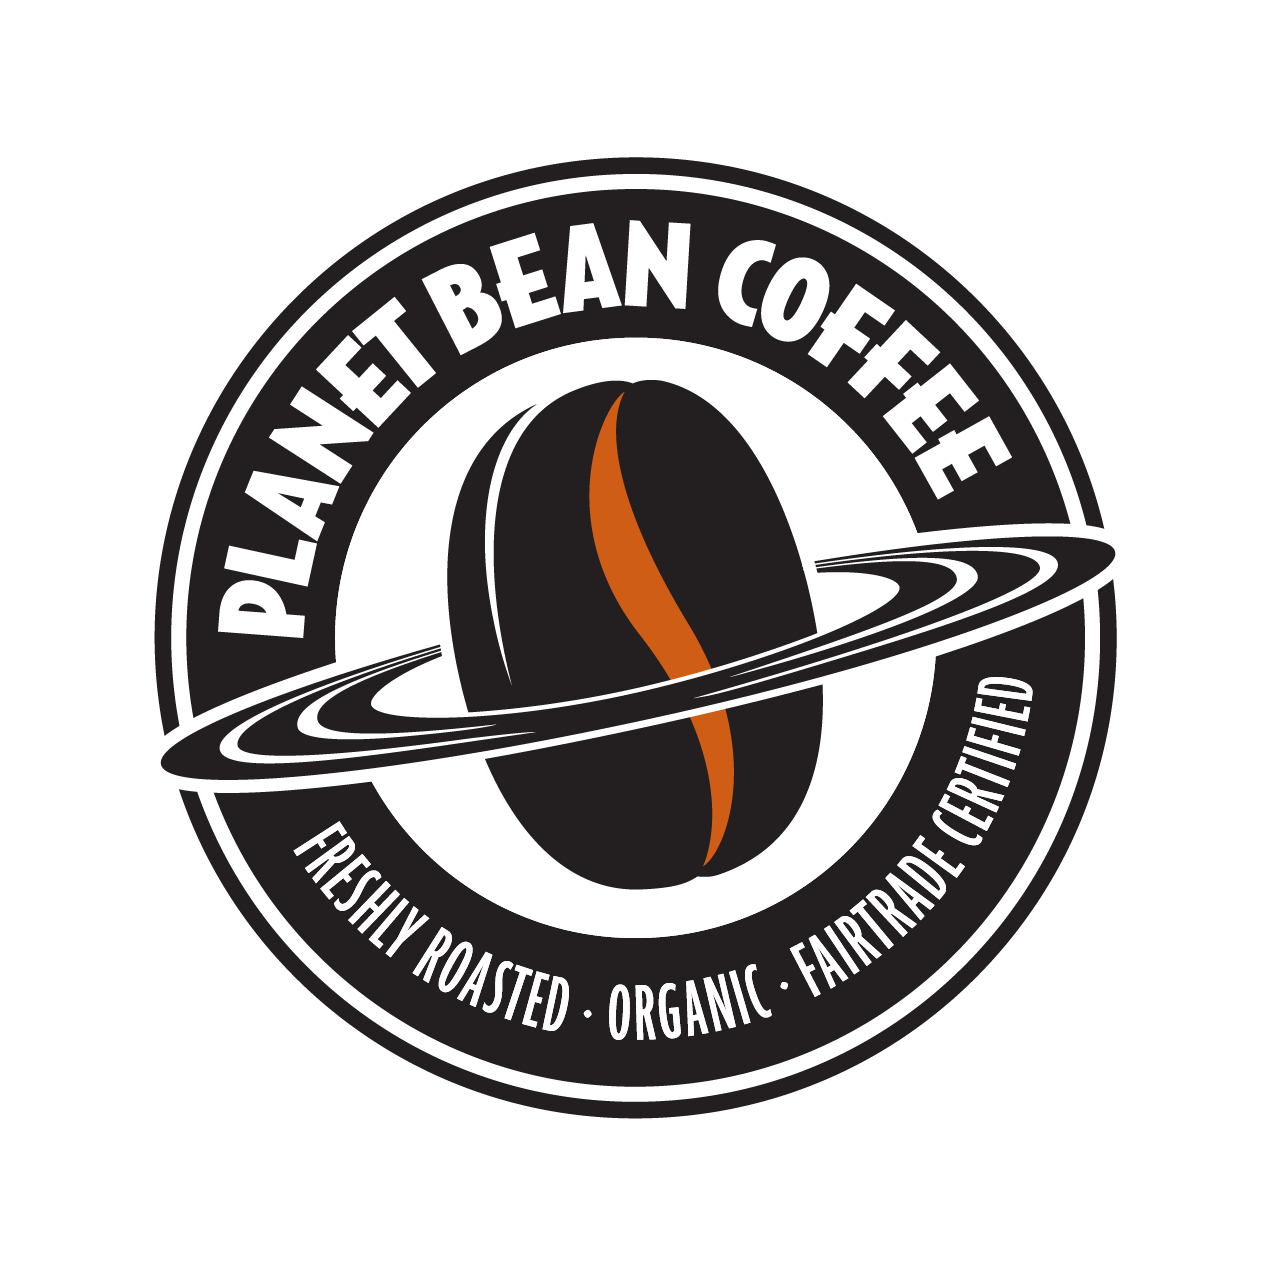 Planet Bean Coffee